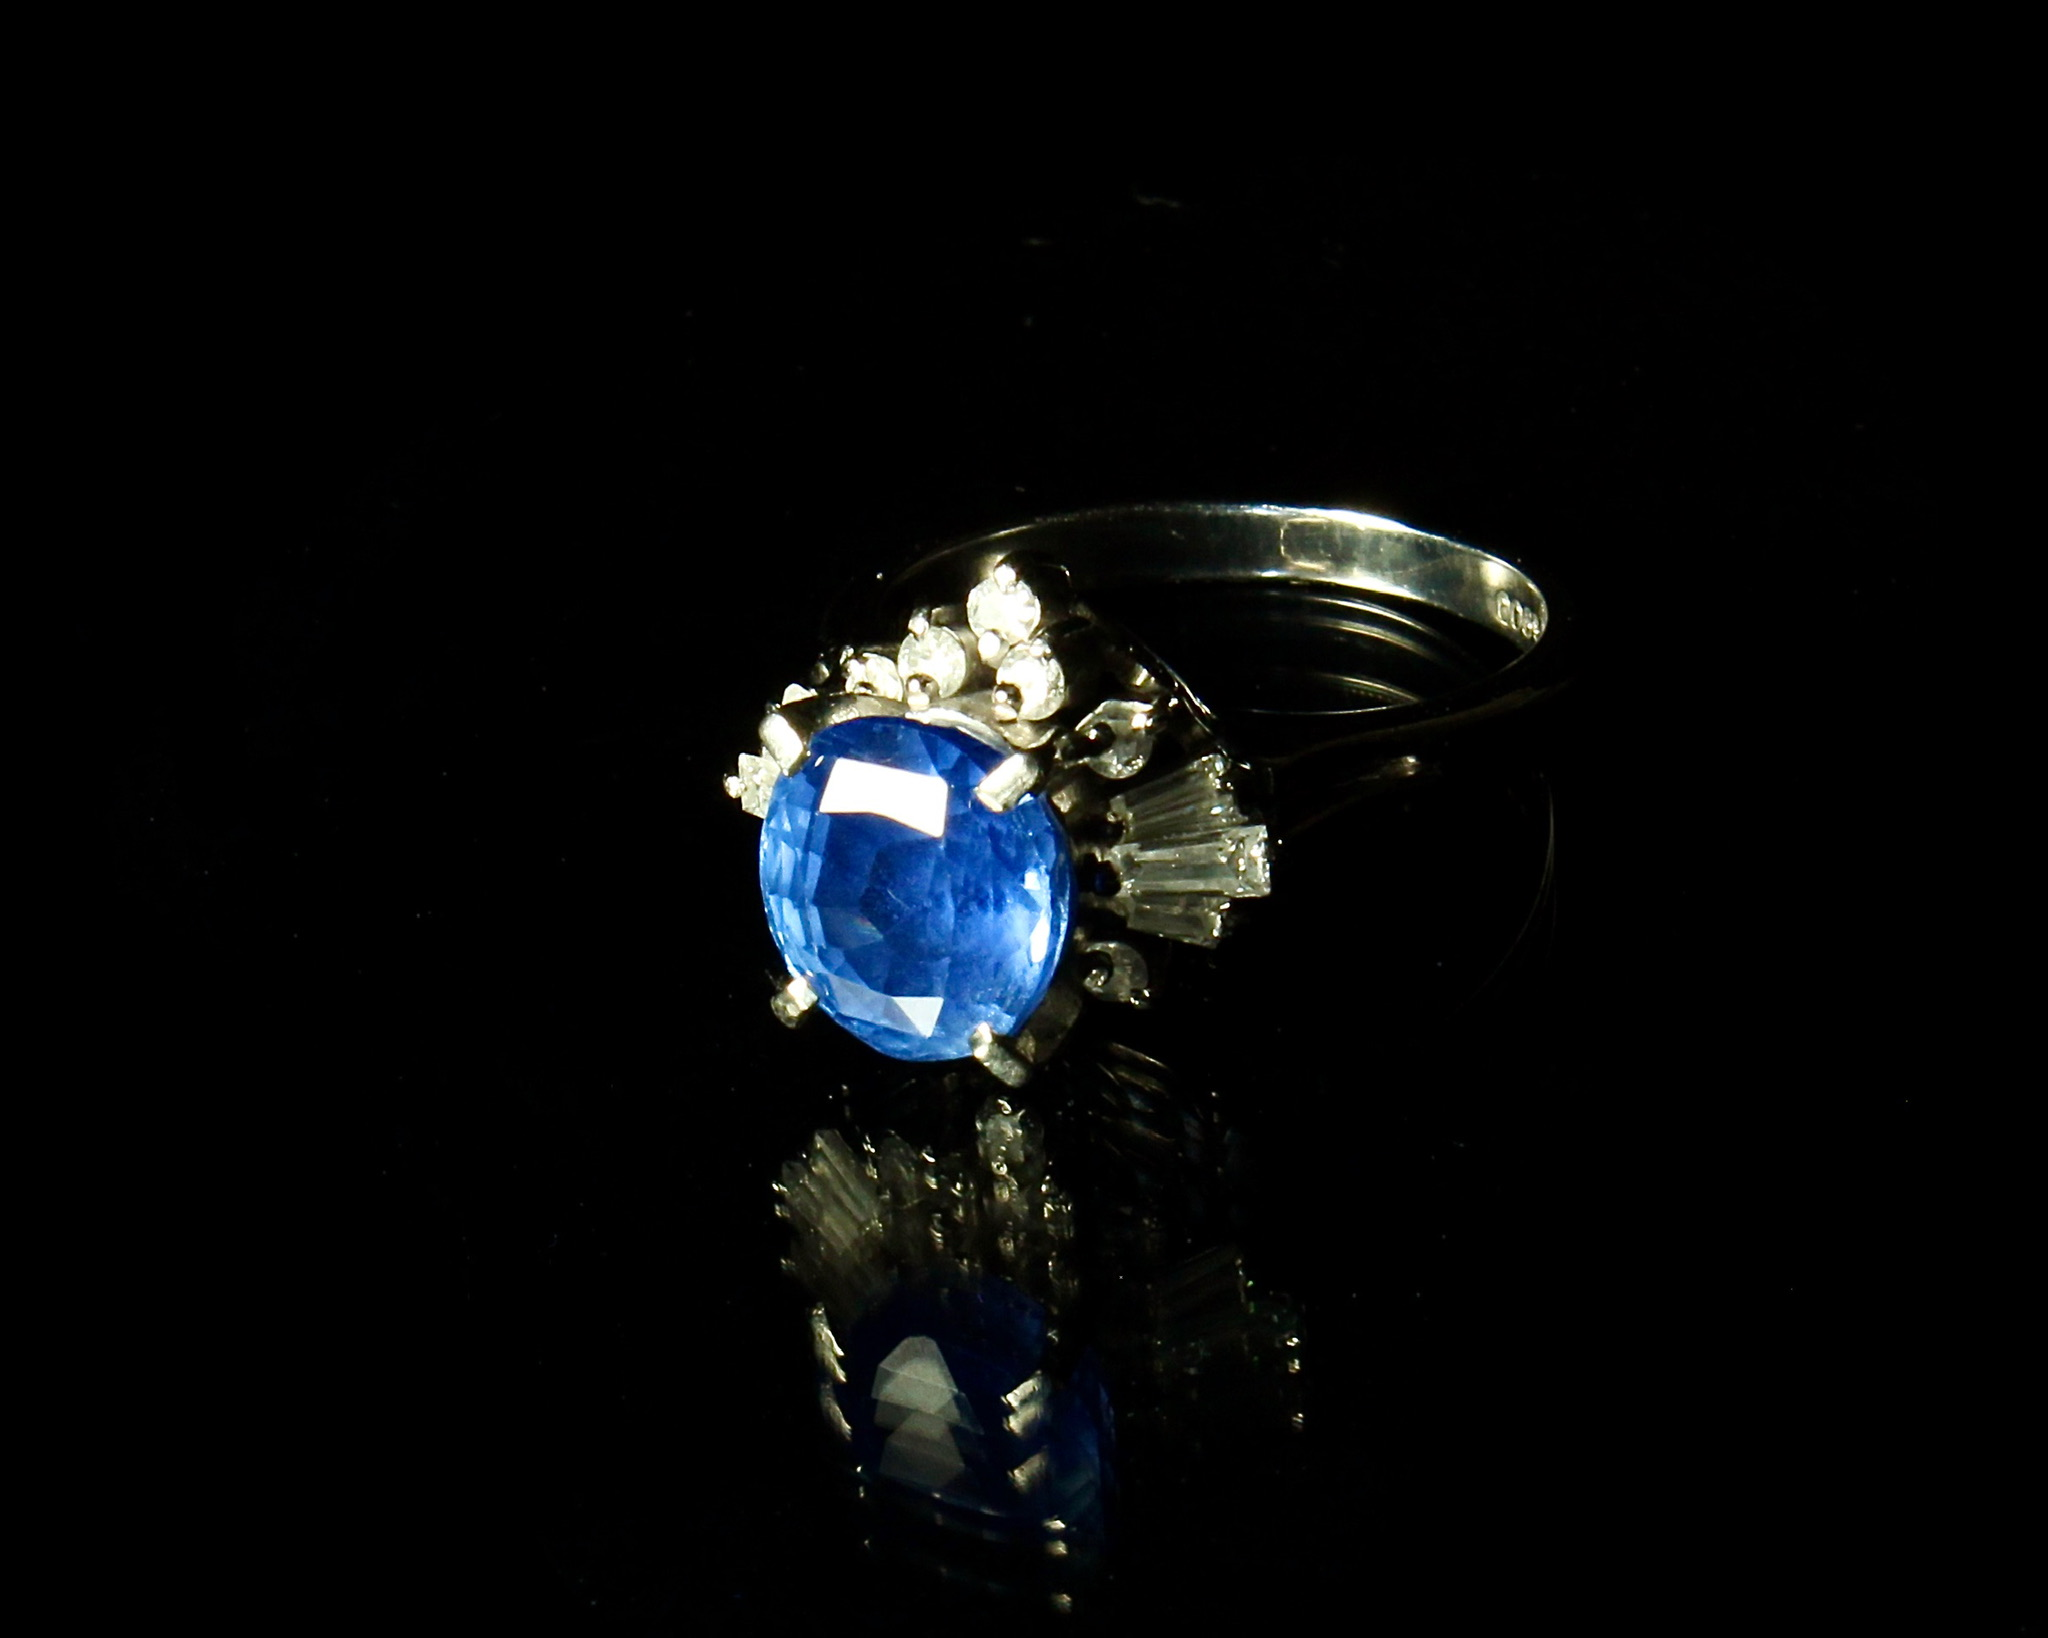 Lot 17 - Sapphire Ring, 1940s-1950s